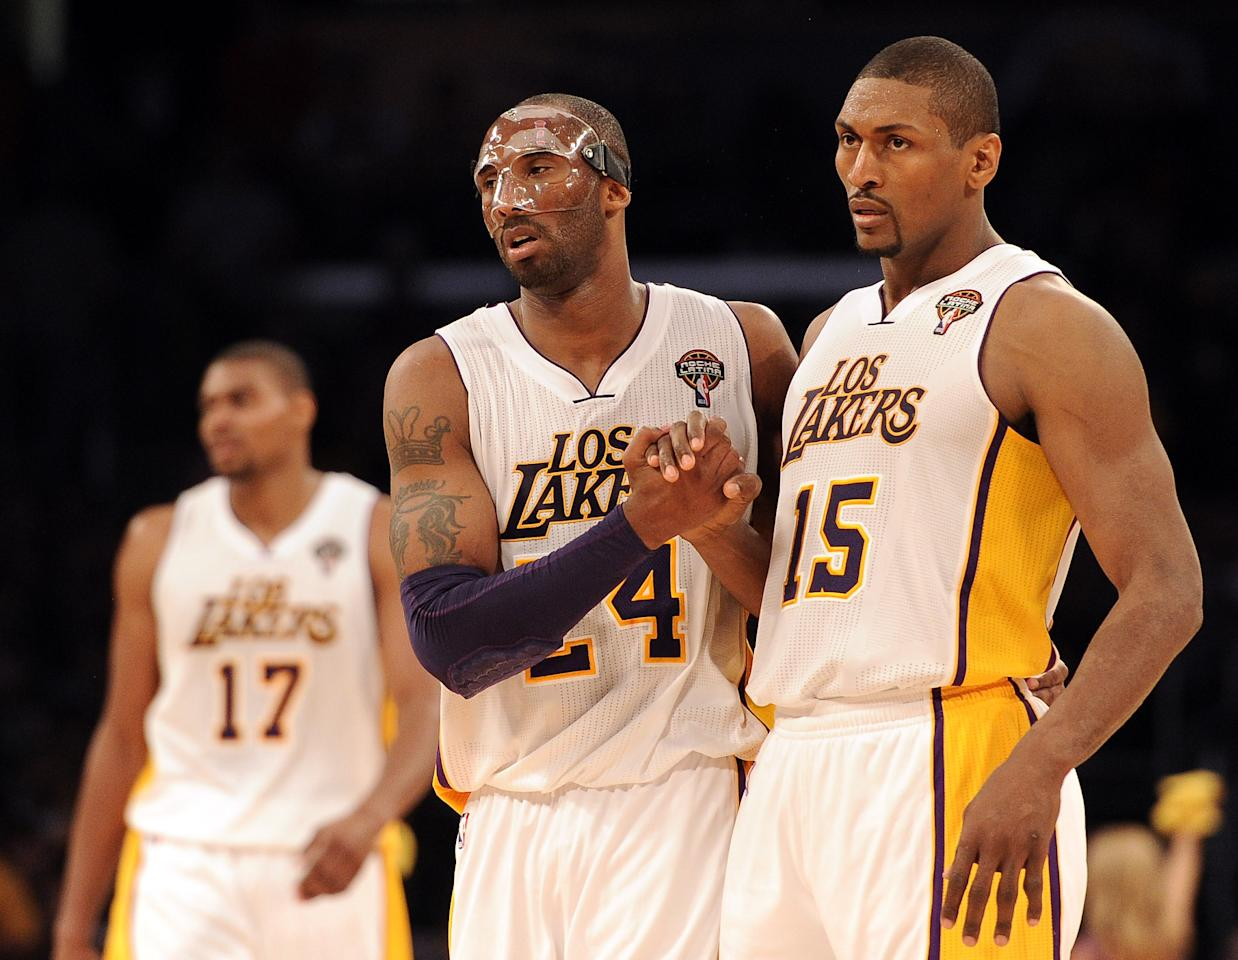 LOS ANGELES, CA - MARCH 04:  Kobe Bryant #24 and Metta World Peace #15 of the Los Angeles Lakers celebrate after a stop in play during a 93-83 Laker win at Staples Center on March 4, 2012 in Los Angeles, California.  NOTE TO USER: User expressly acknowledges and agrees that, by downloading and or using this photograph, User is consenting to the terms and conditions of the Getty Images License Agreement.  (Photo by Harry How/Getty Images)